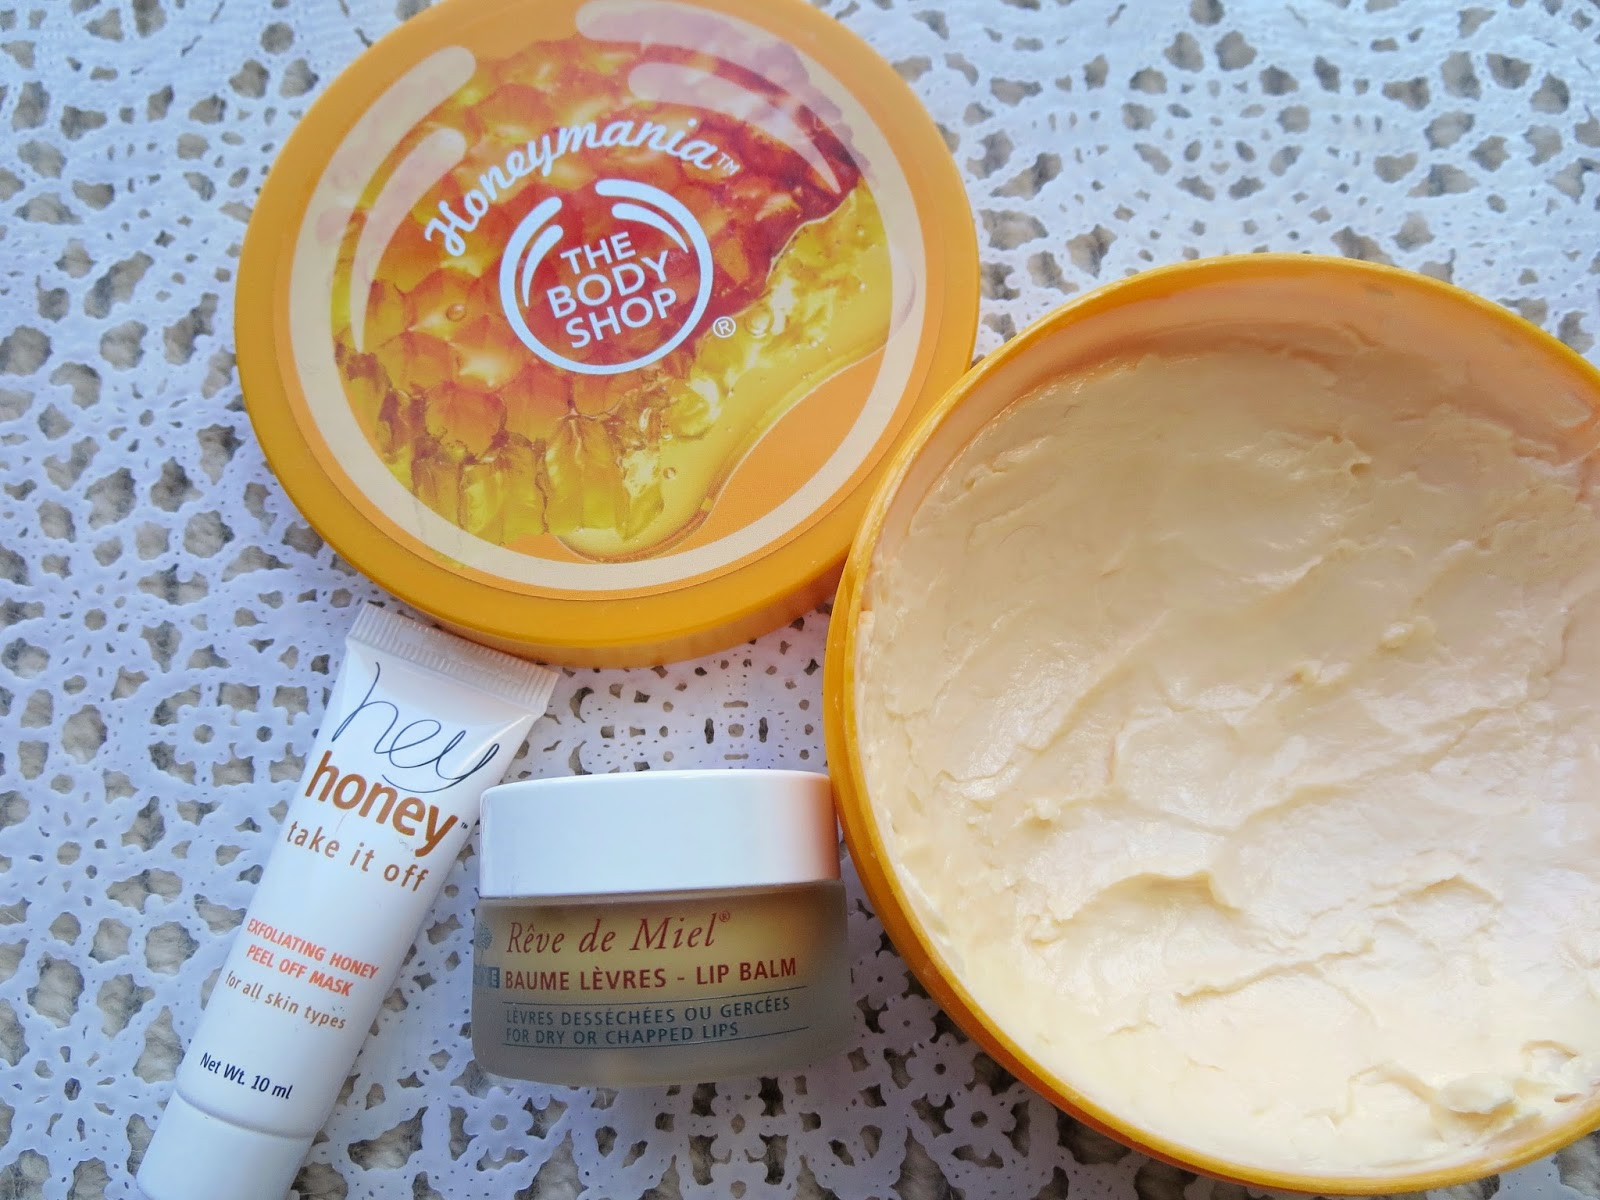 a picture of Honey skincare : Hey honey take it off, Reve de Miel, Honeymania